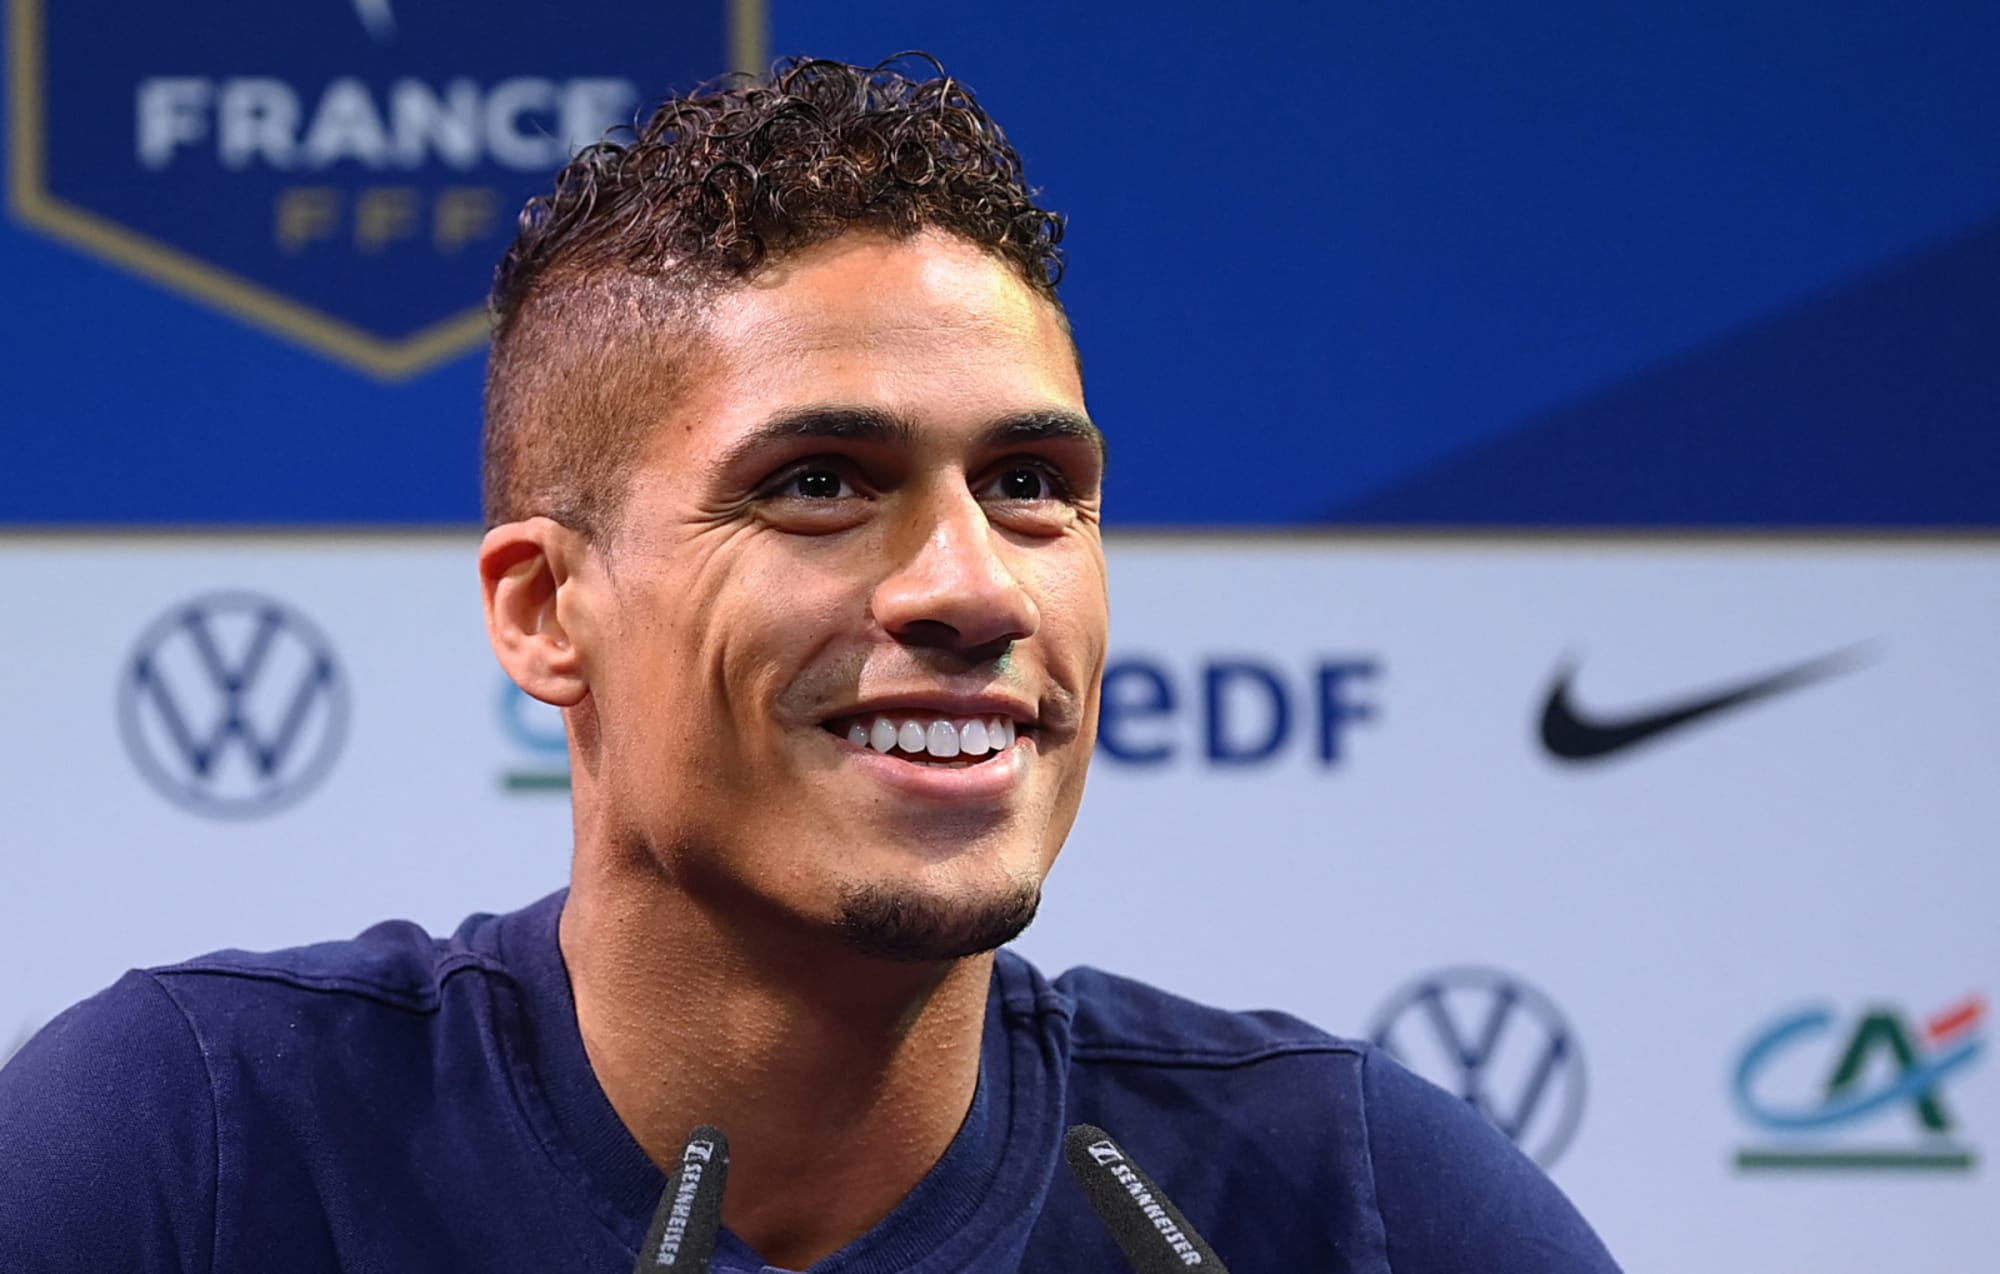 Raphael Varane signs a contract with Manchester United worth £41 million.